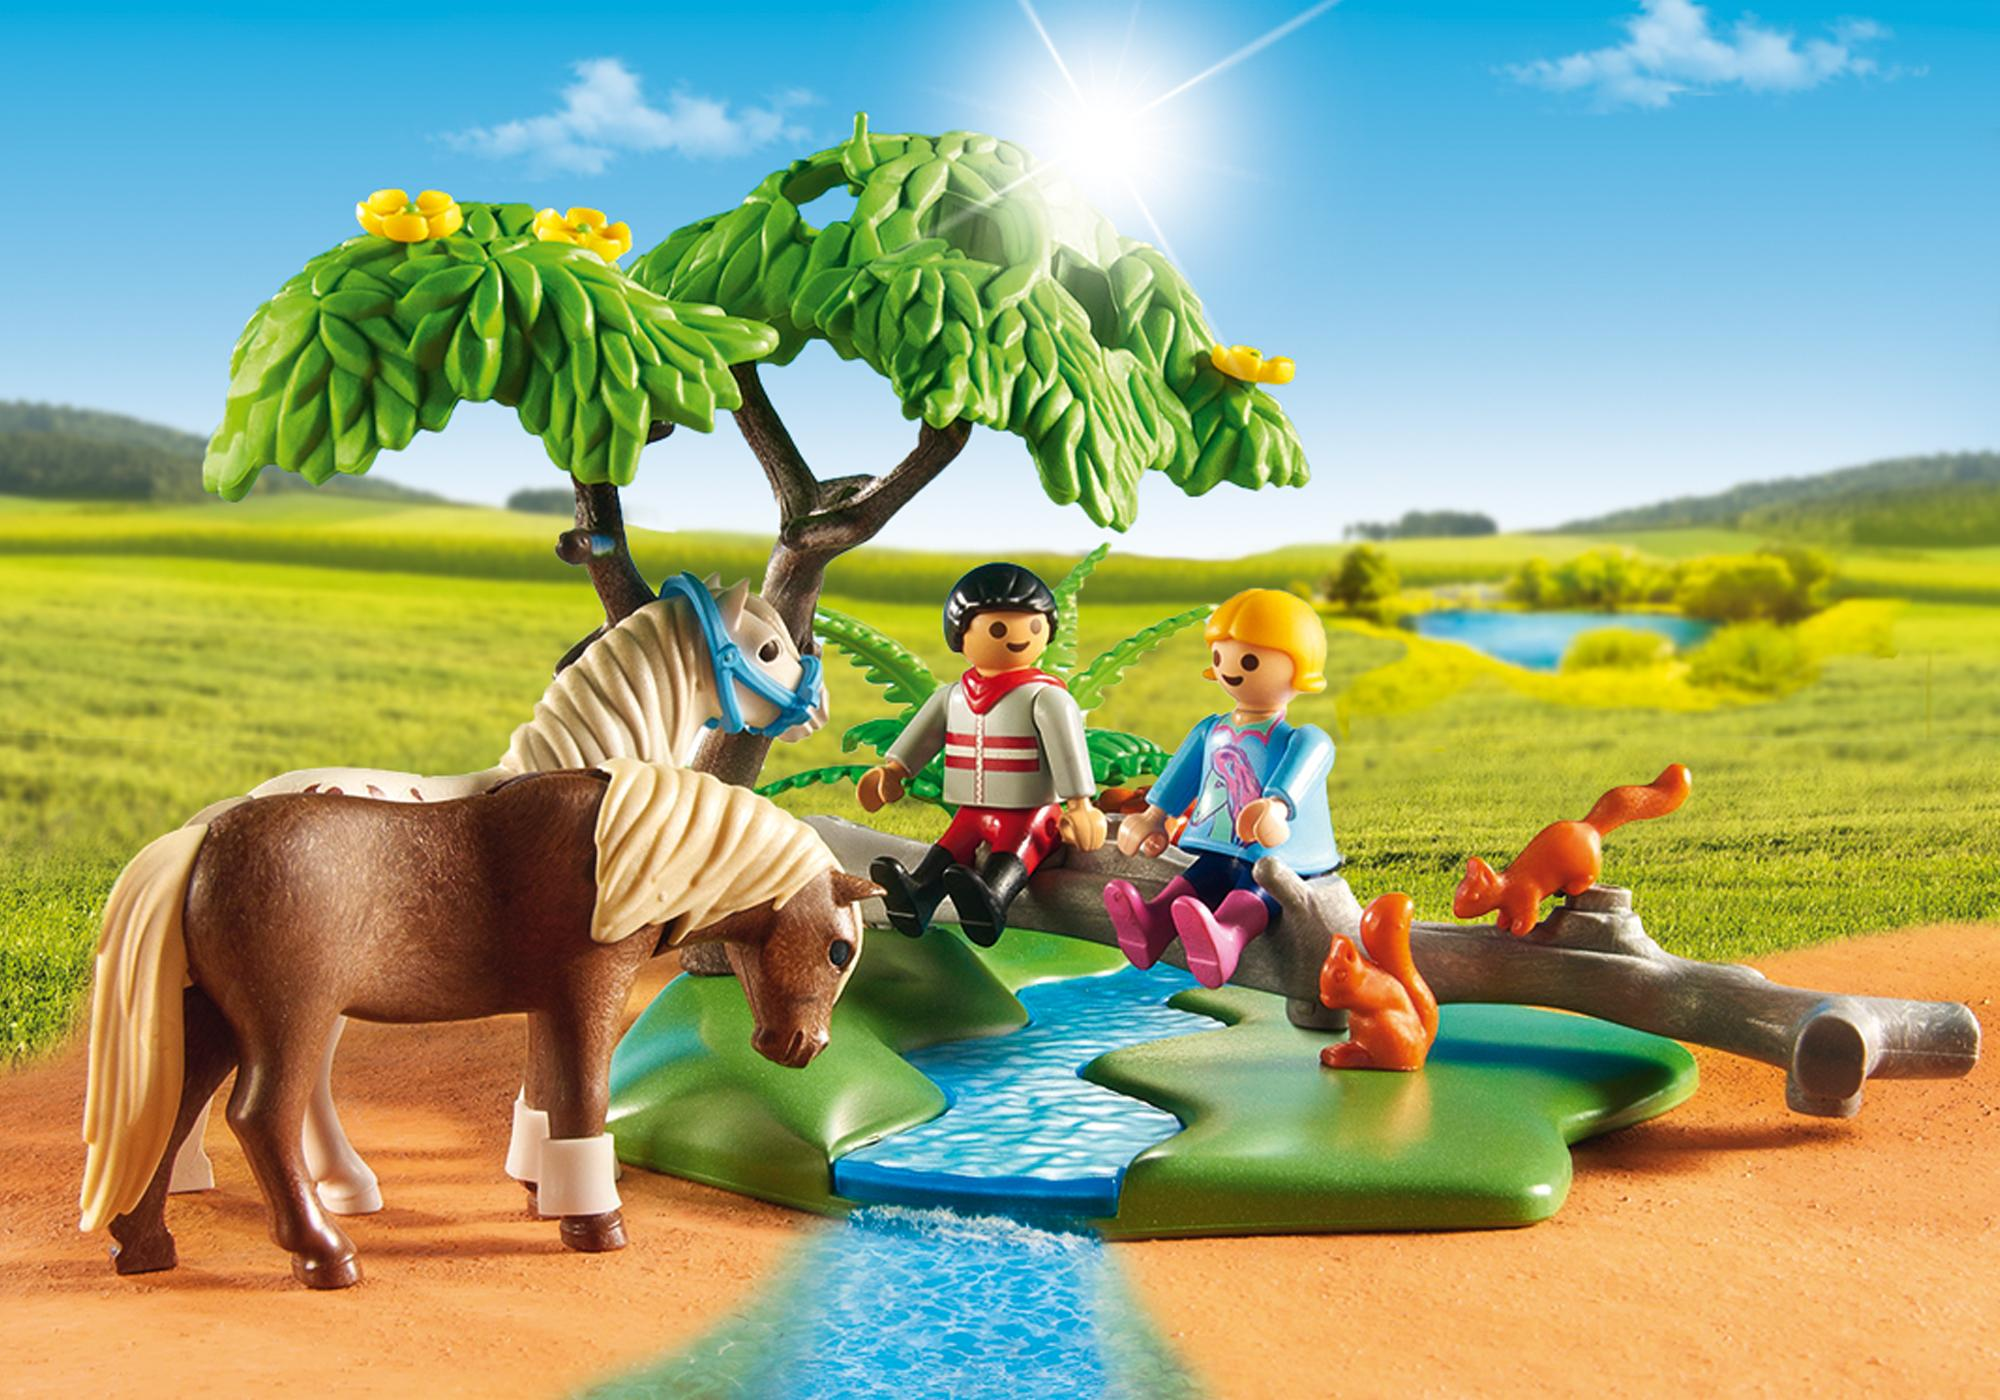 http://media.playmobil.com/i/playmobil/6947_product_extra1